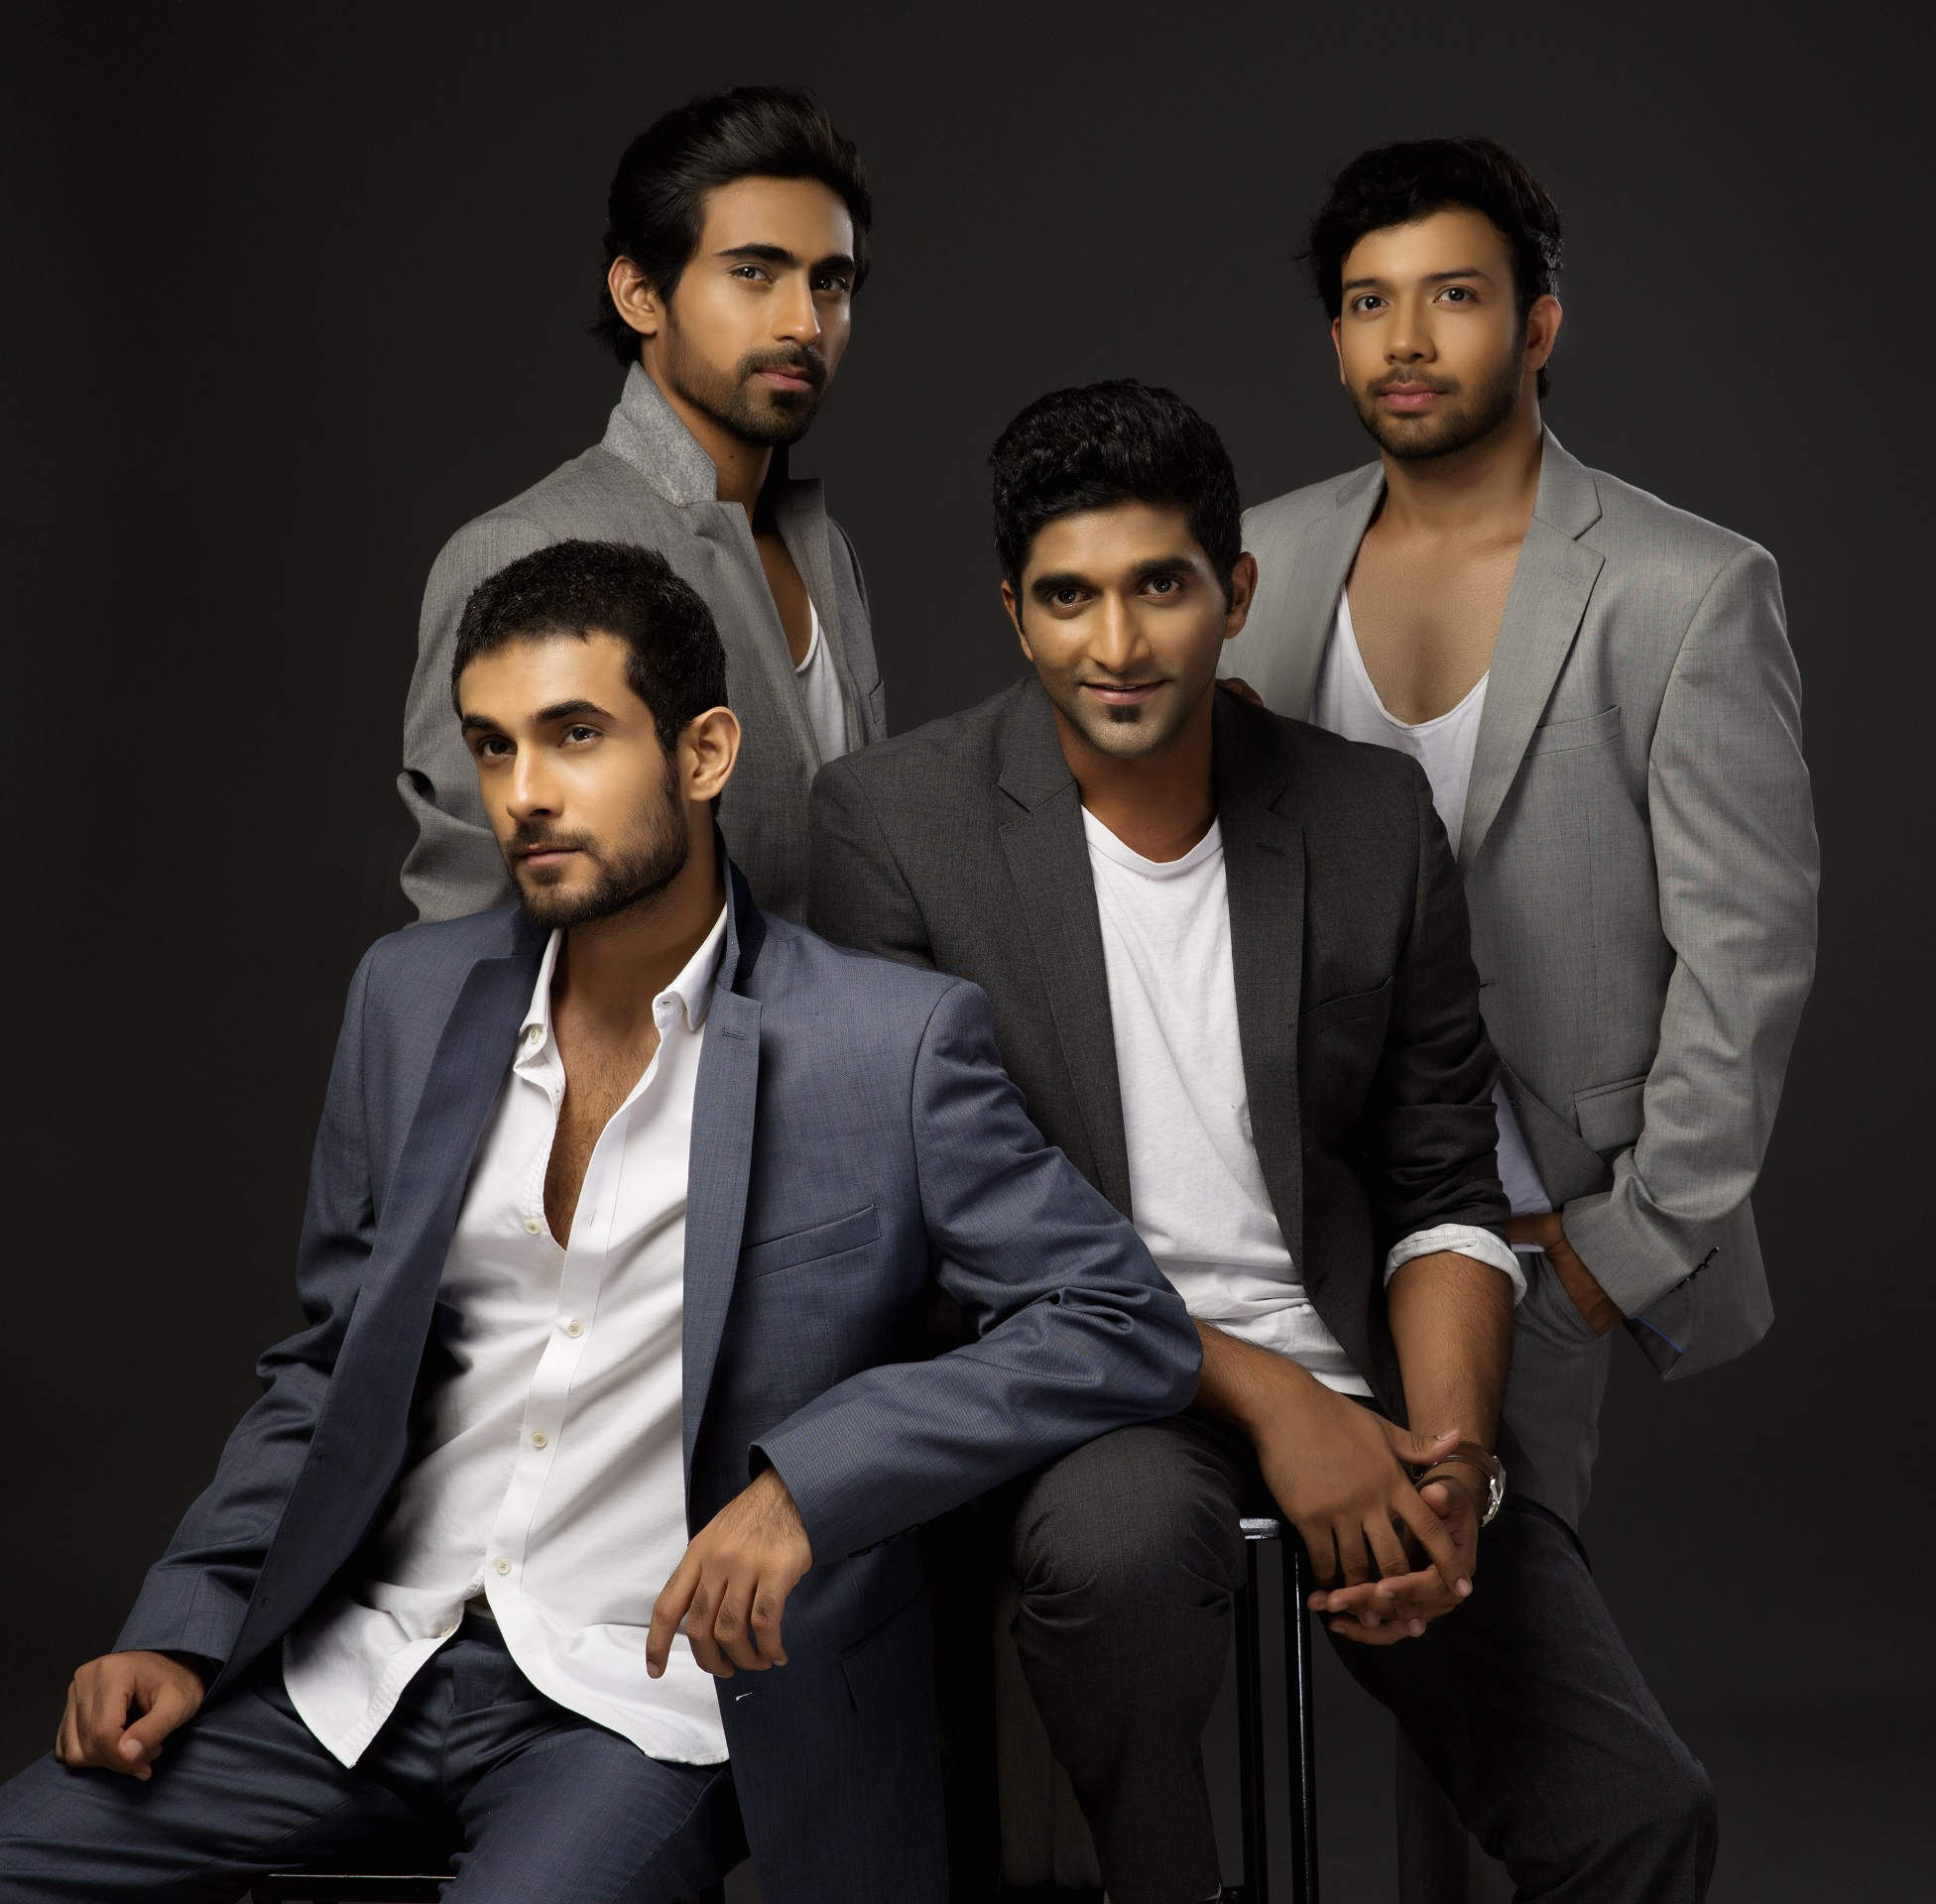 Artists of the band Sanam